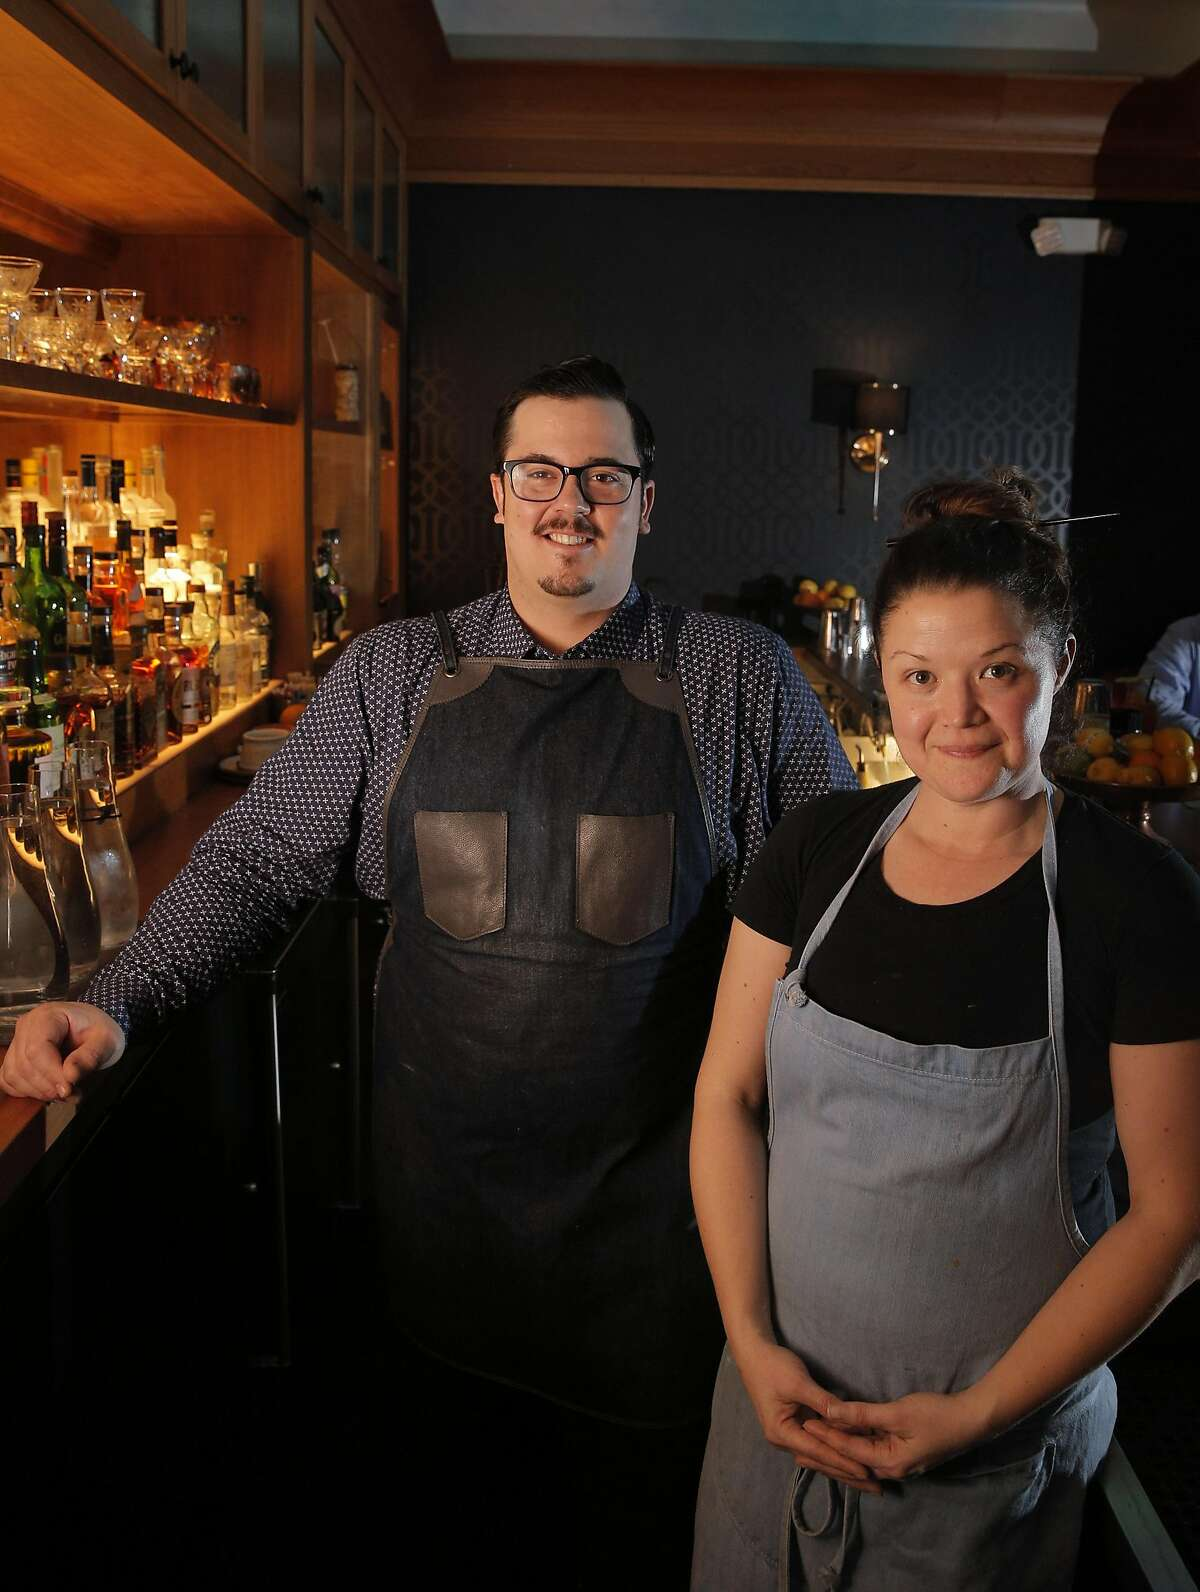 Owner Kim Alter, and Bar Manager Drew Majoulet at the Linden Room in San Francisco, Calif., on Tuesday, January 17, 2017.